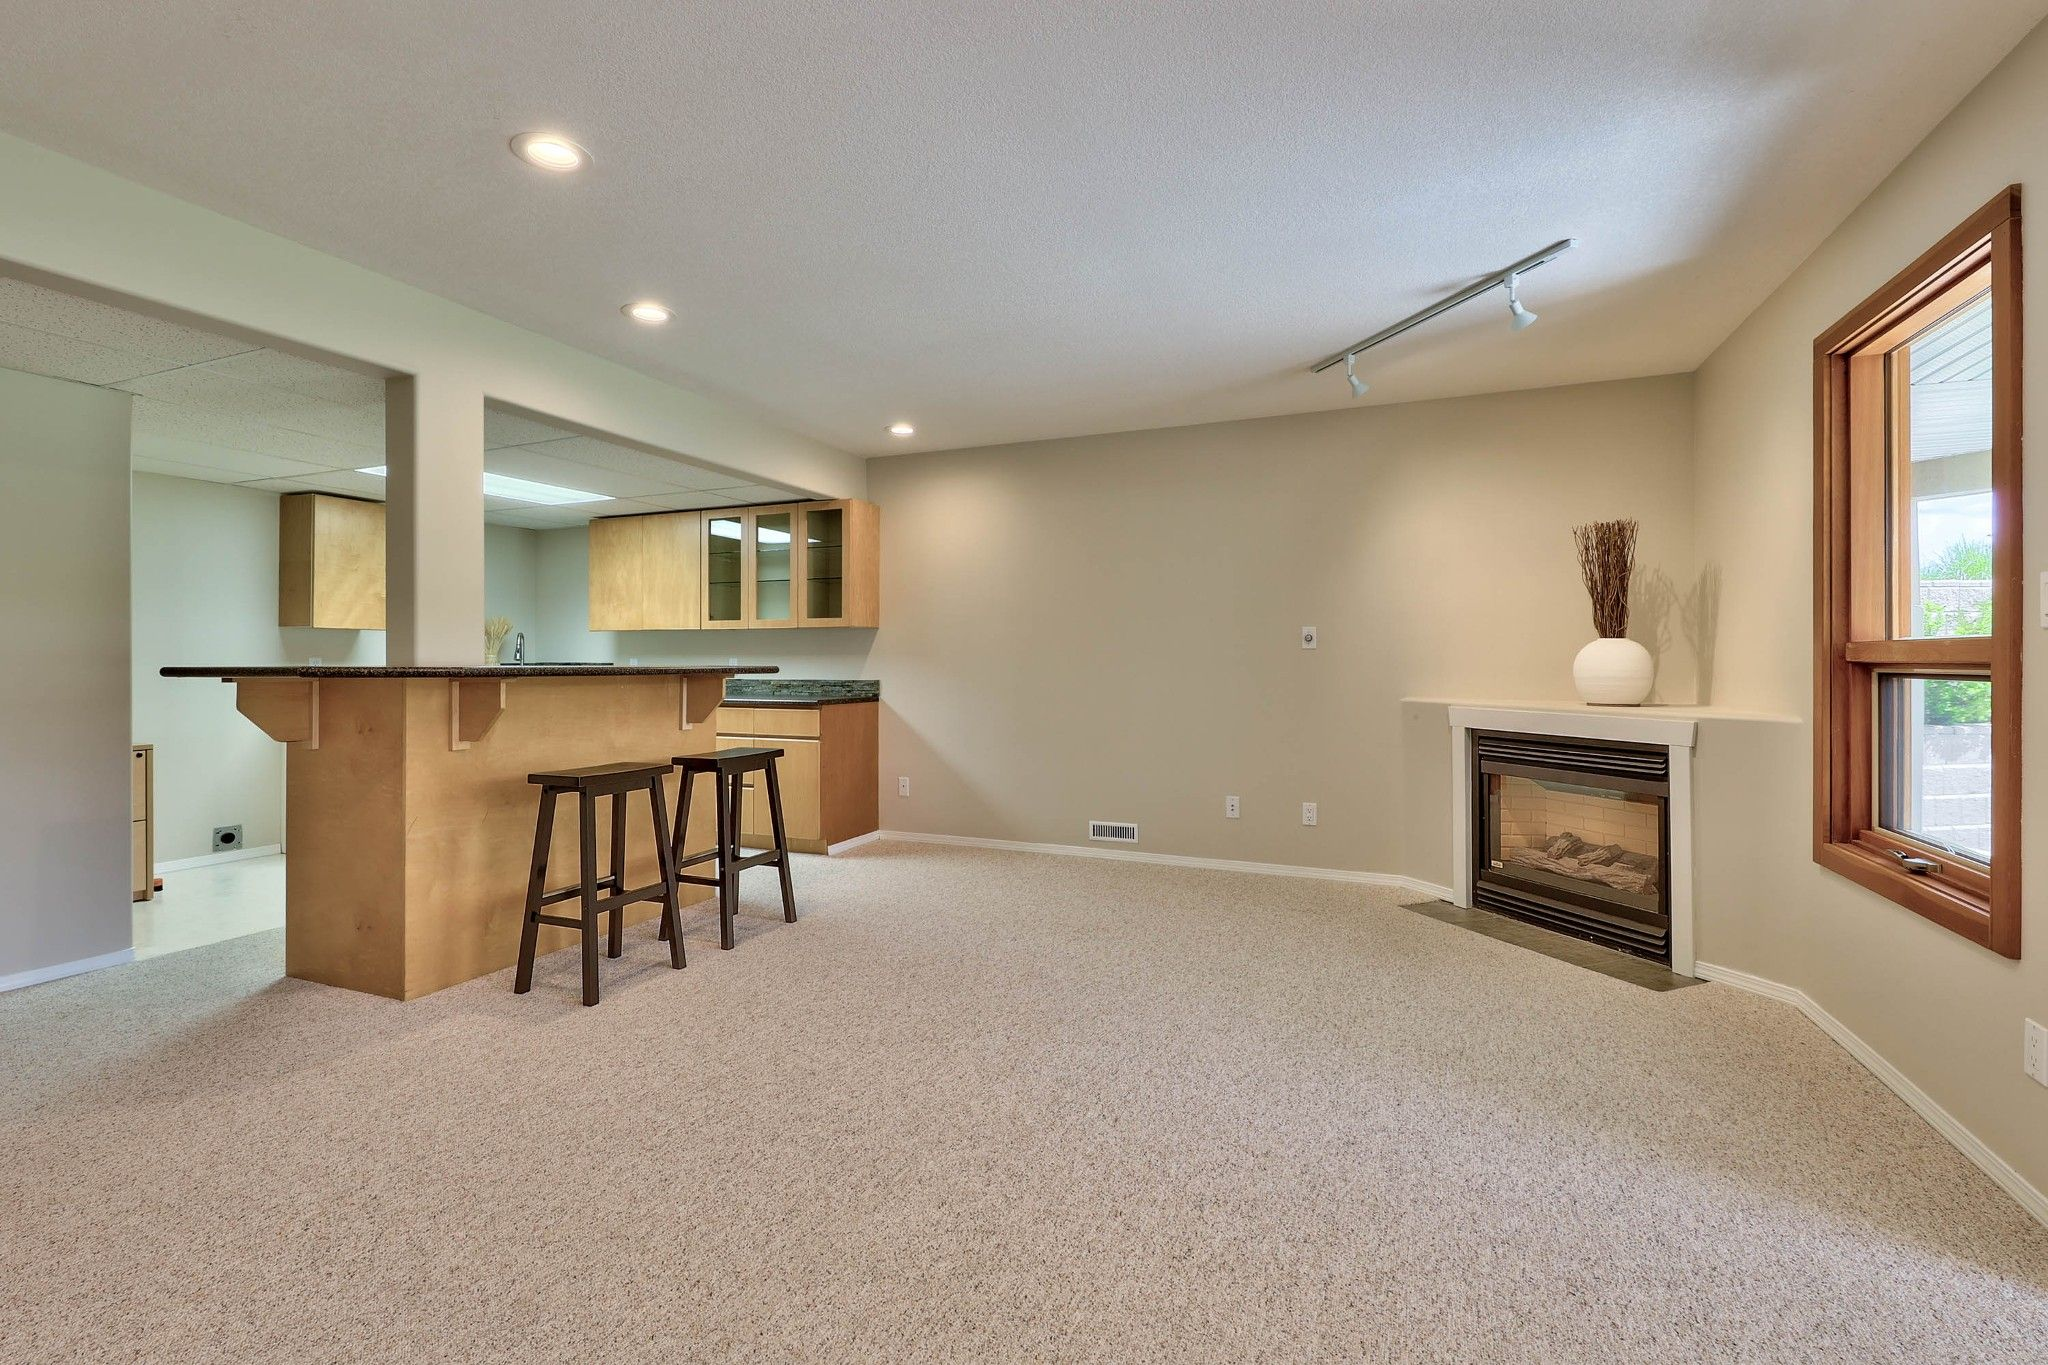 Photo 33: Photos: 3299 E Shuswap Road in Kamloops: South Thompson Valley House for sale : MLS®# 162162